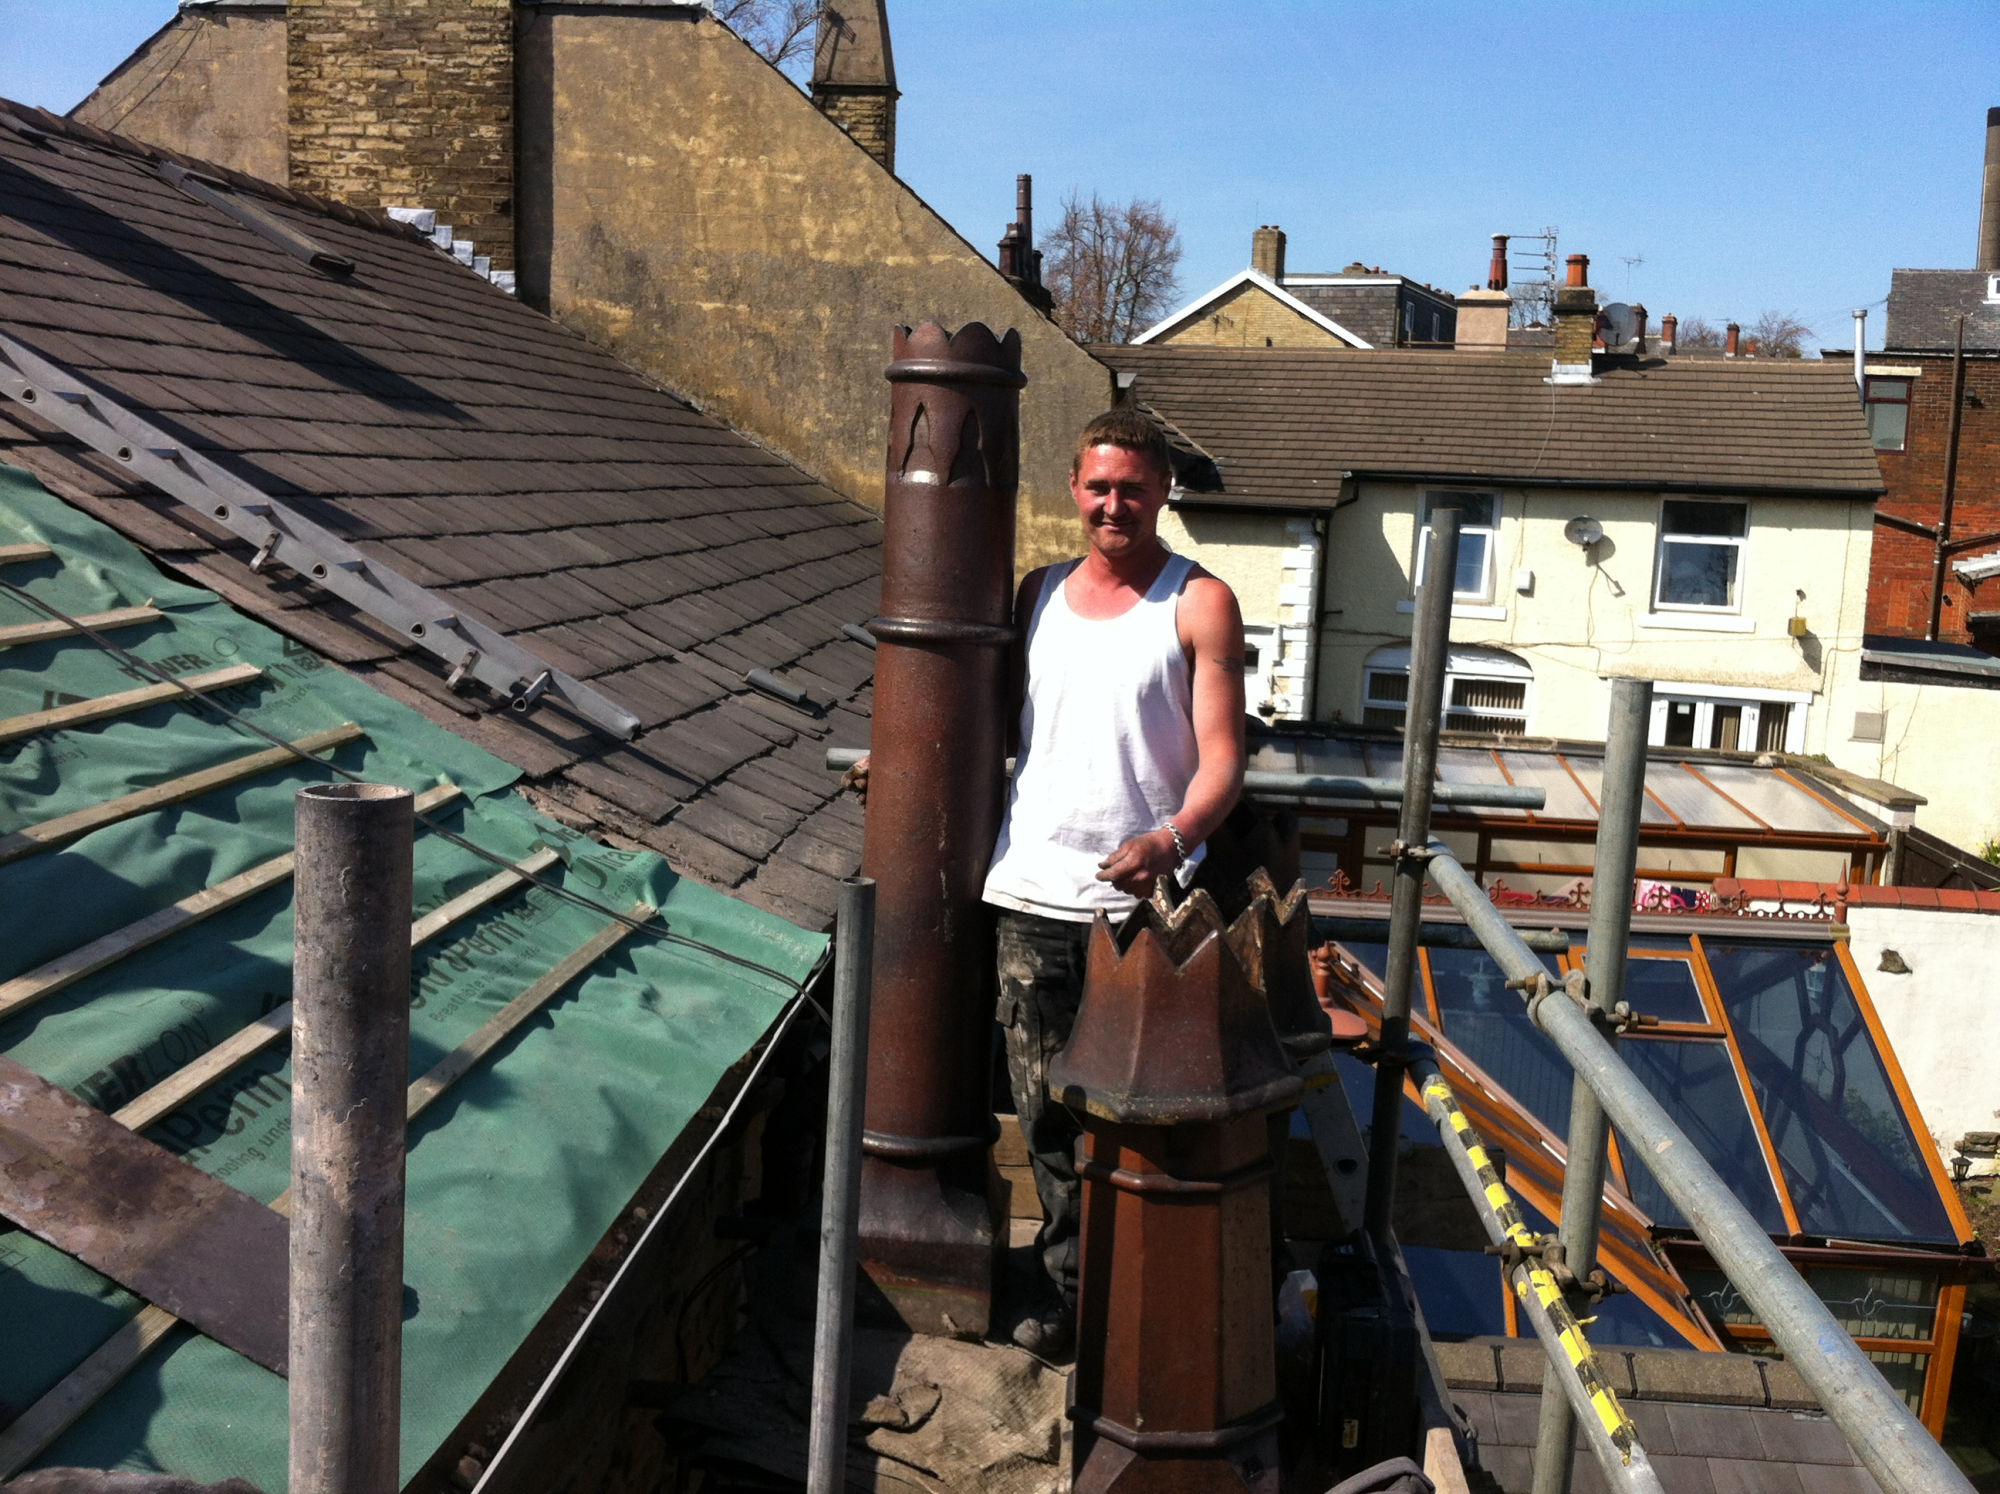 Slate re-roofing among the chimney pots